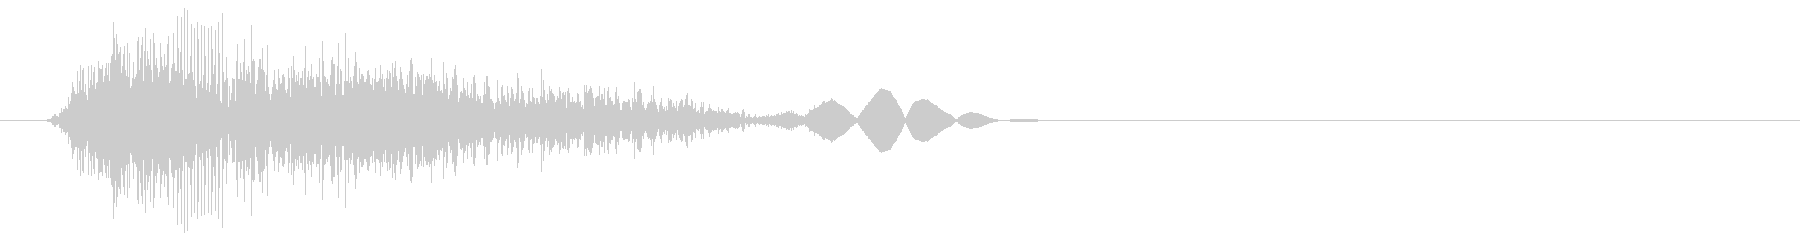 goblin monster attacking voice 3's unreproduced waveform